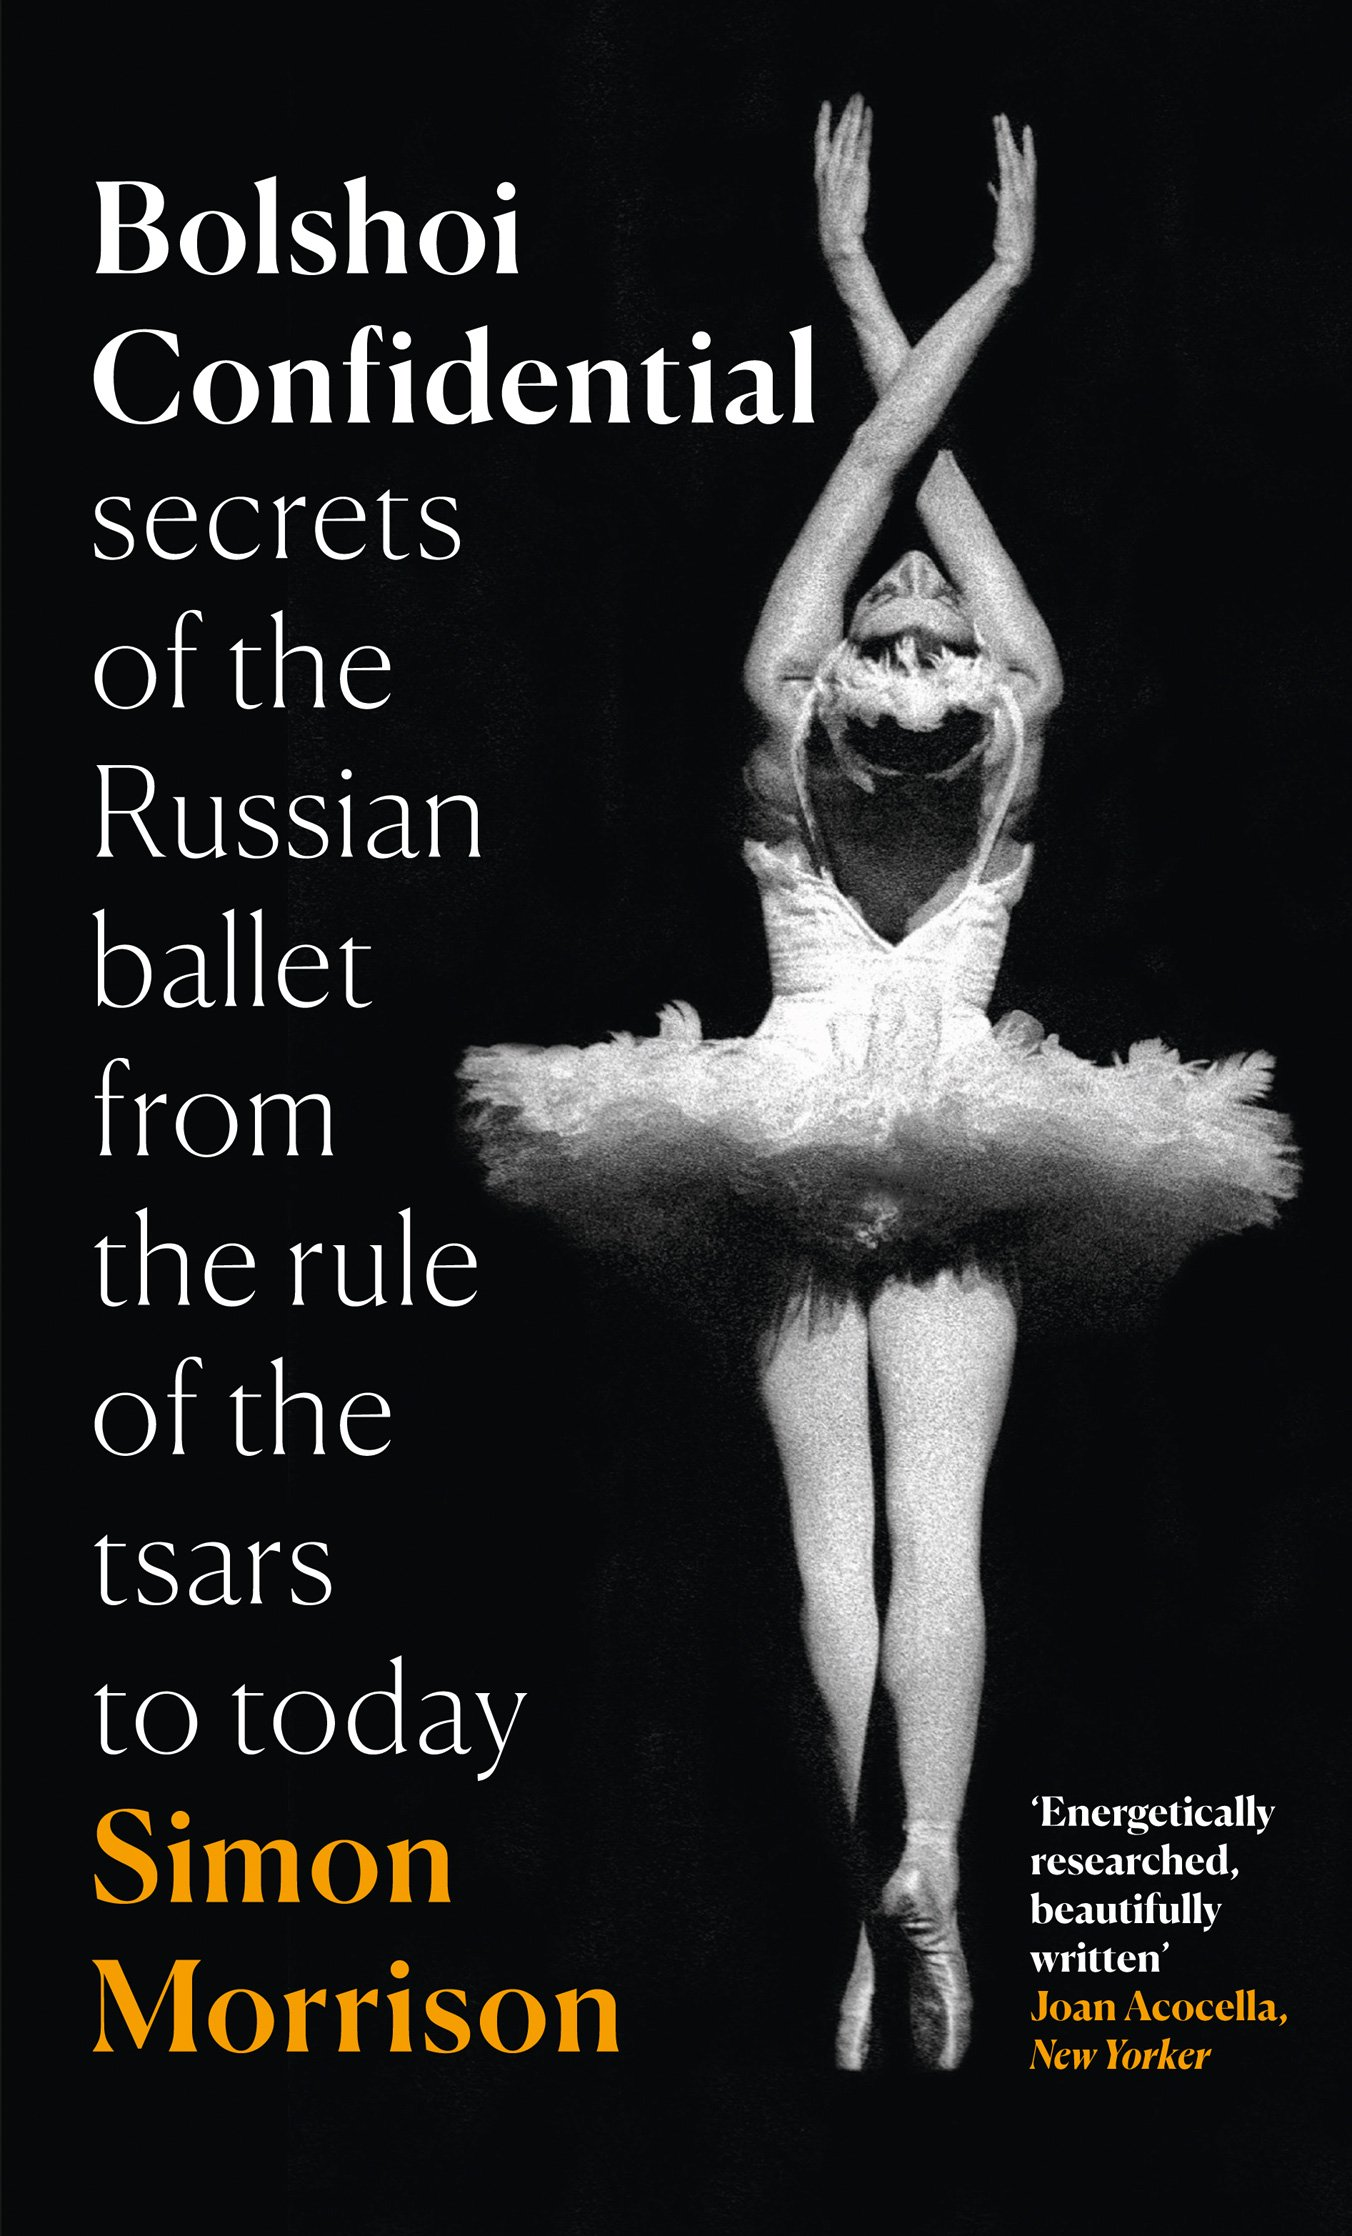 bolshoi confidential secrets of the russian ballet from the rule